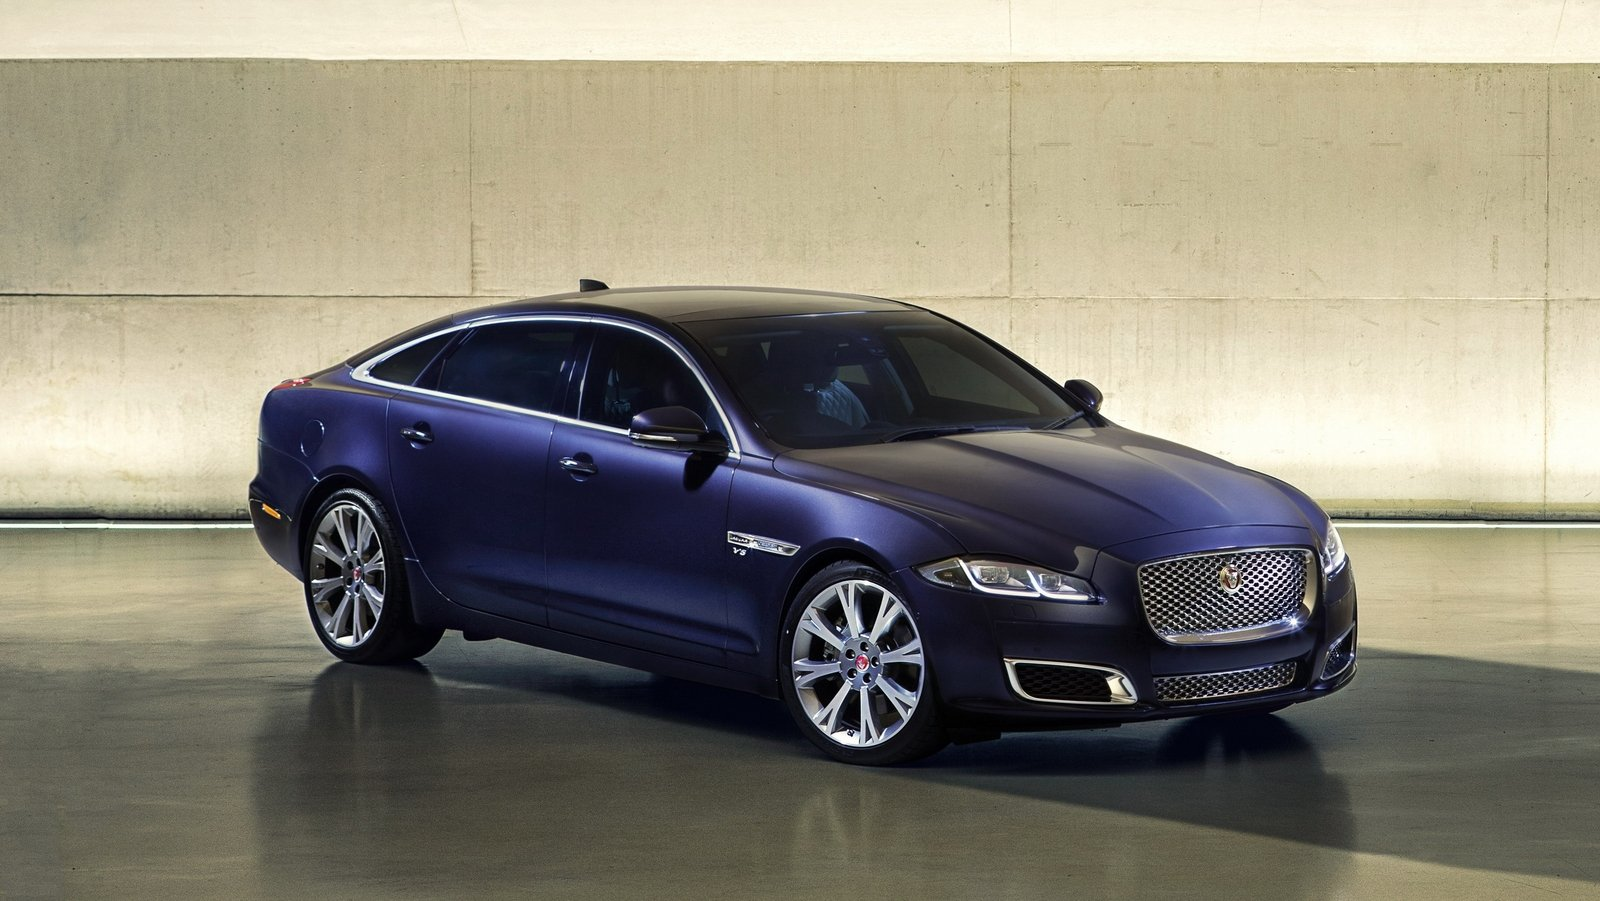 2017 jaguar xj picture 633900 car review top speed. Black Bedroom Furniture Sets. Home Design Ideas